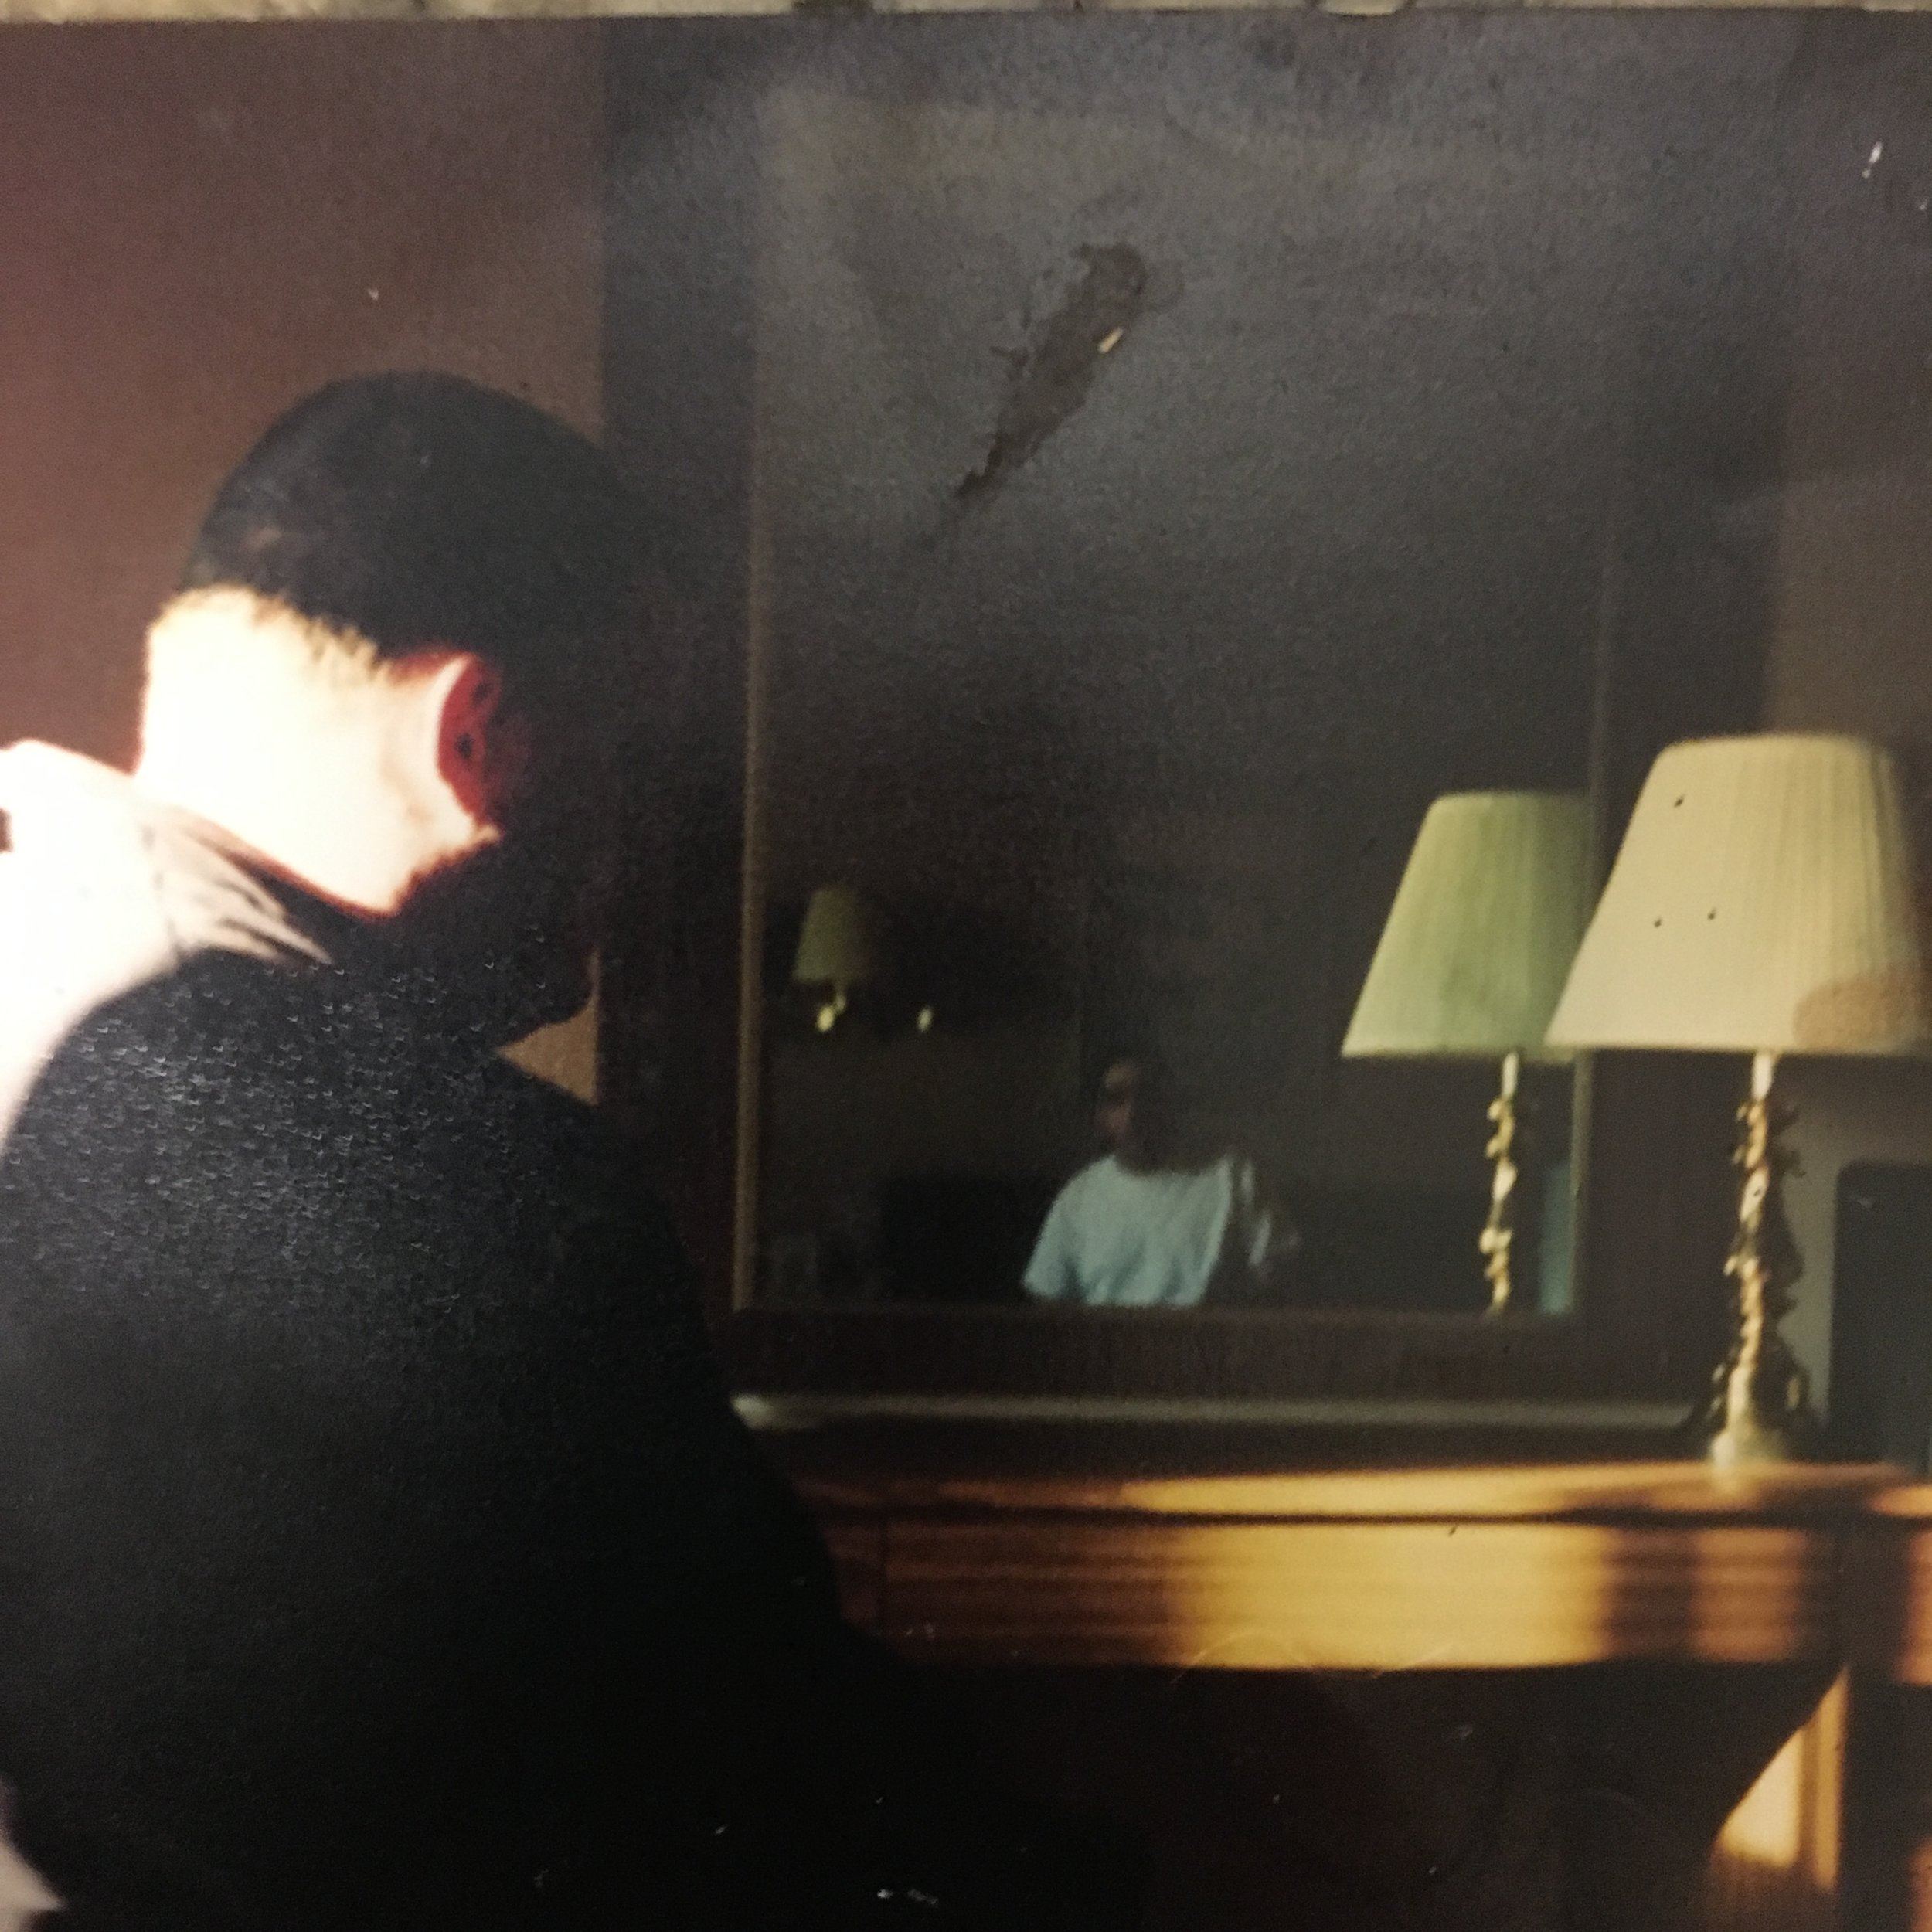 The only picture of Bob (left) in my possession. Hotel room on a road trip to Philadelphia to see ECW wrestling, 1995.